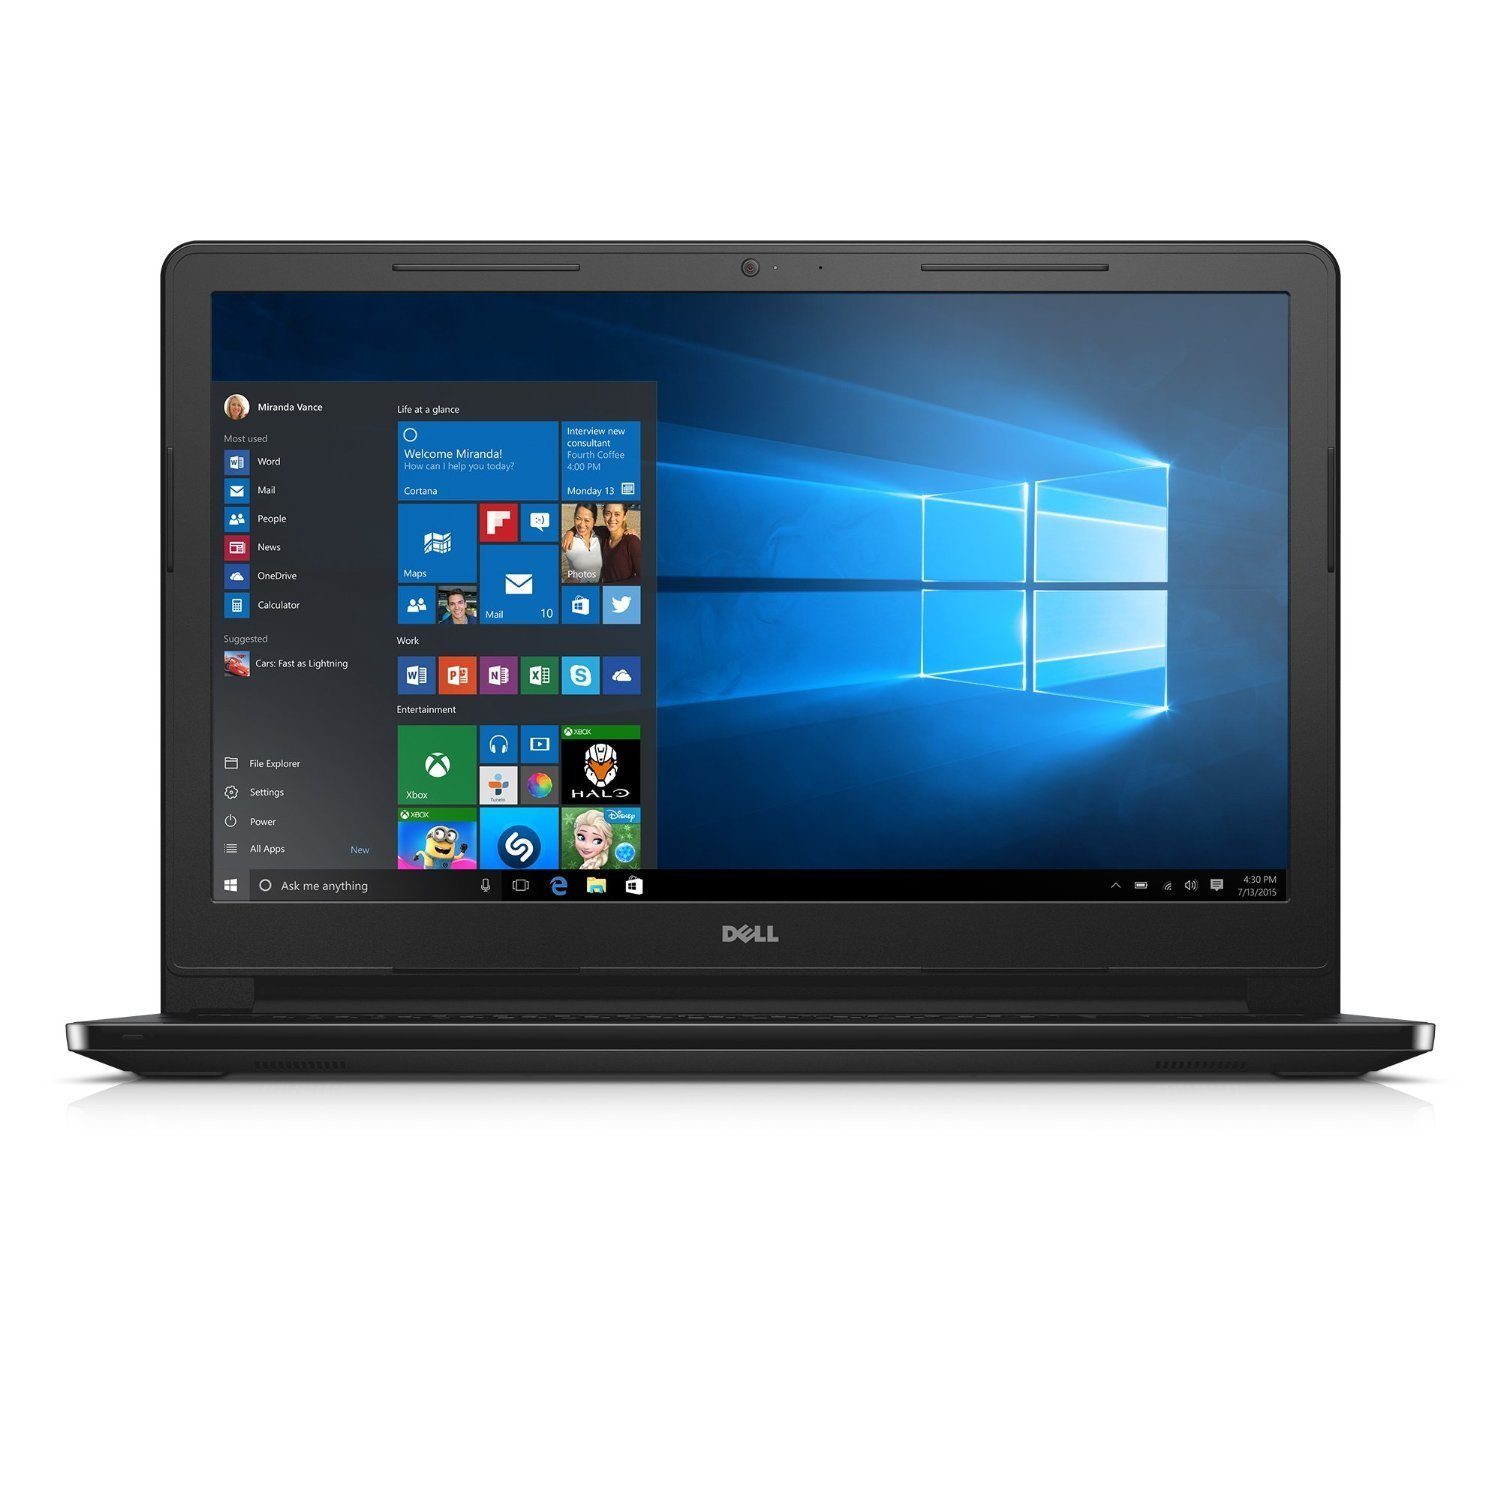 Dell Inspiron Premium Laptop PC, 15.6-inch HD LED-backlit Display, AMD A8-7410 Quad Core Processor, 6GB DDR3L RAM, 500GB HDD, DVD +/- RW, Radeon R5 Graphics, Windows 10